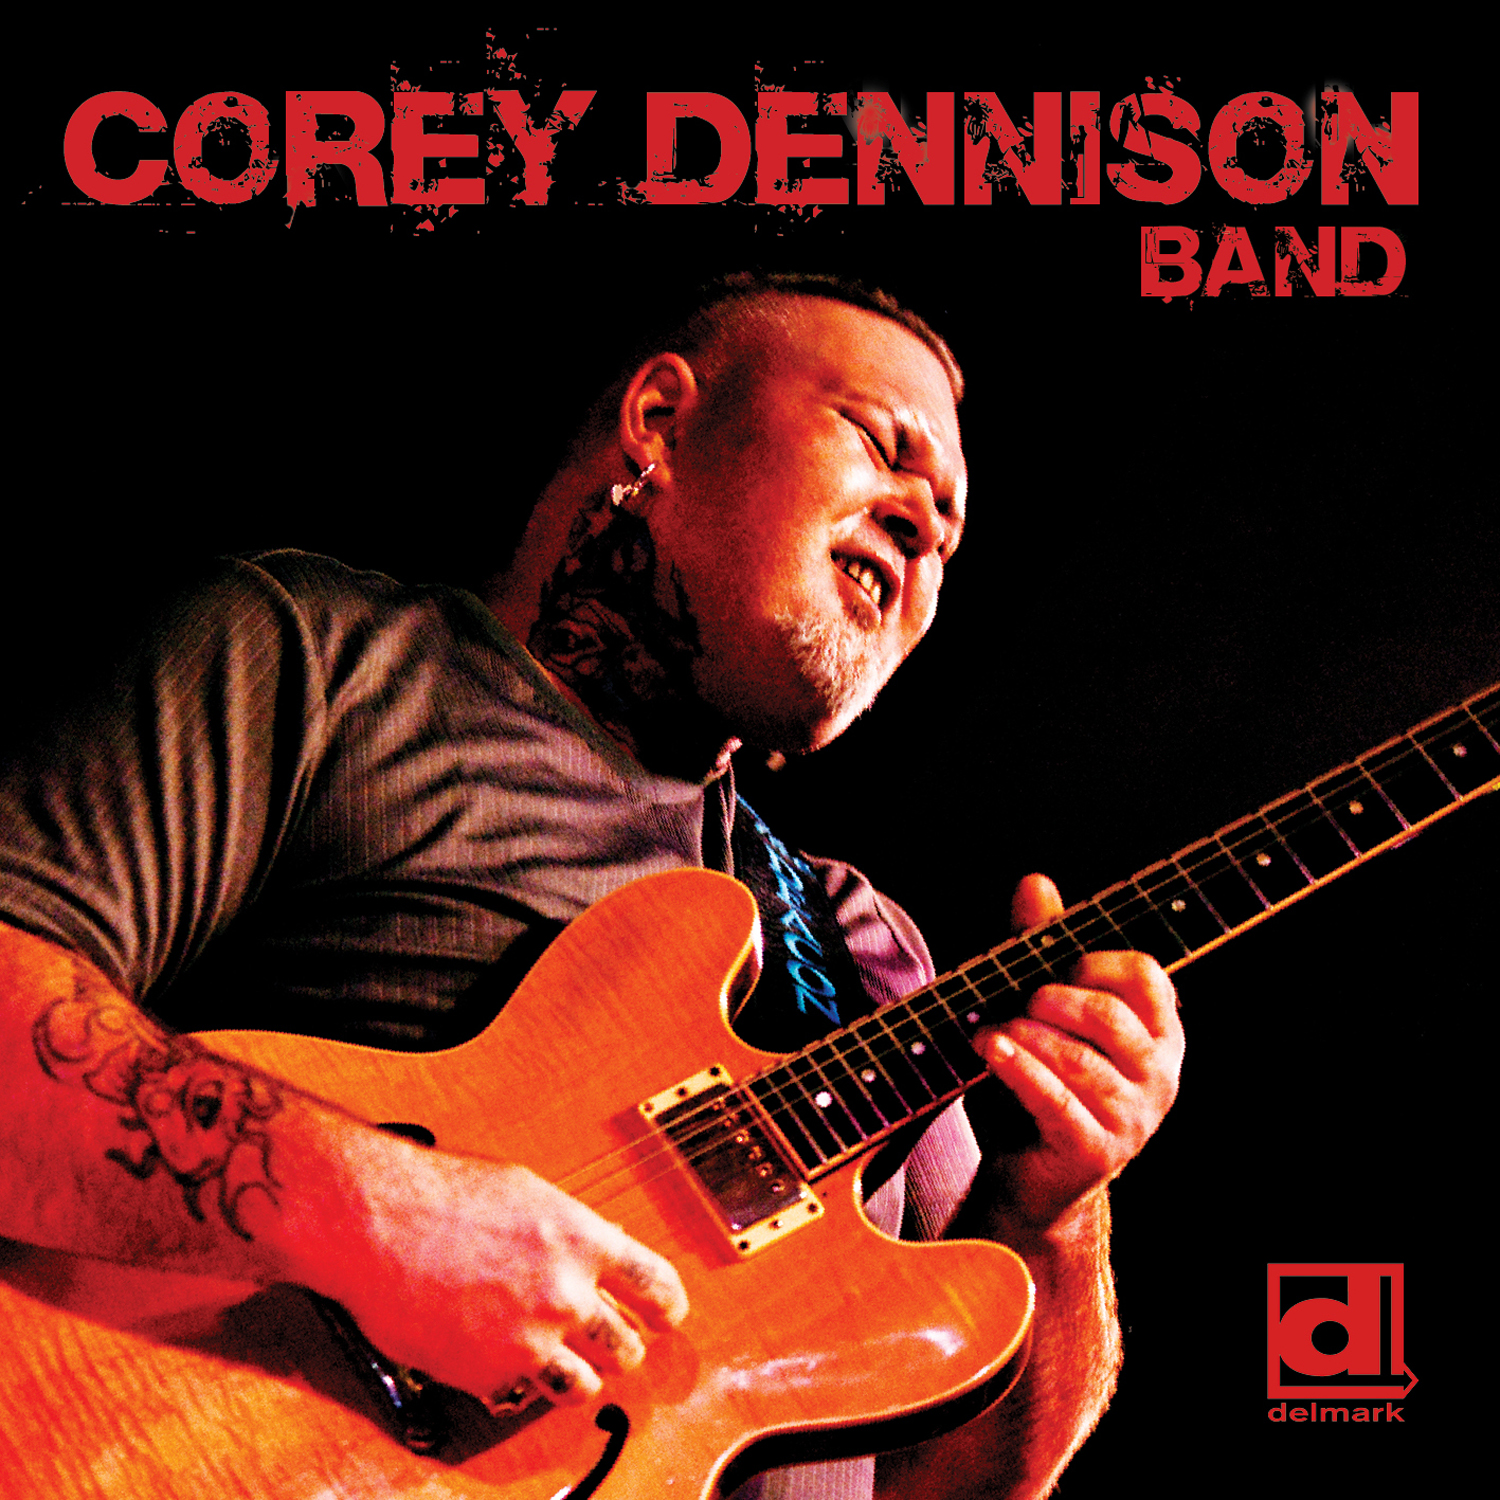 """Album Cover - Top Text Says """"Corey Dennison Band"""" Photo of Corey Dennison playing an electric guitar, in bottom right corner is Delmark Logo"""